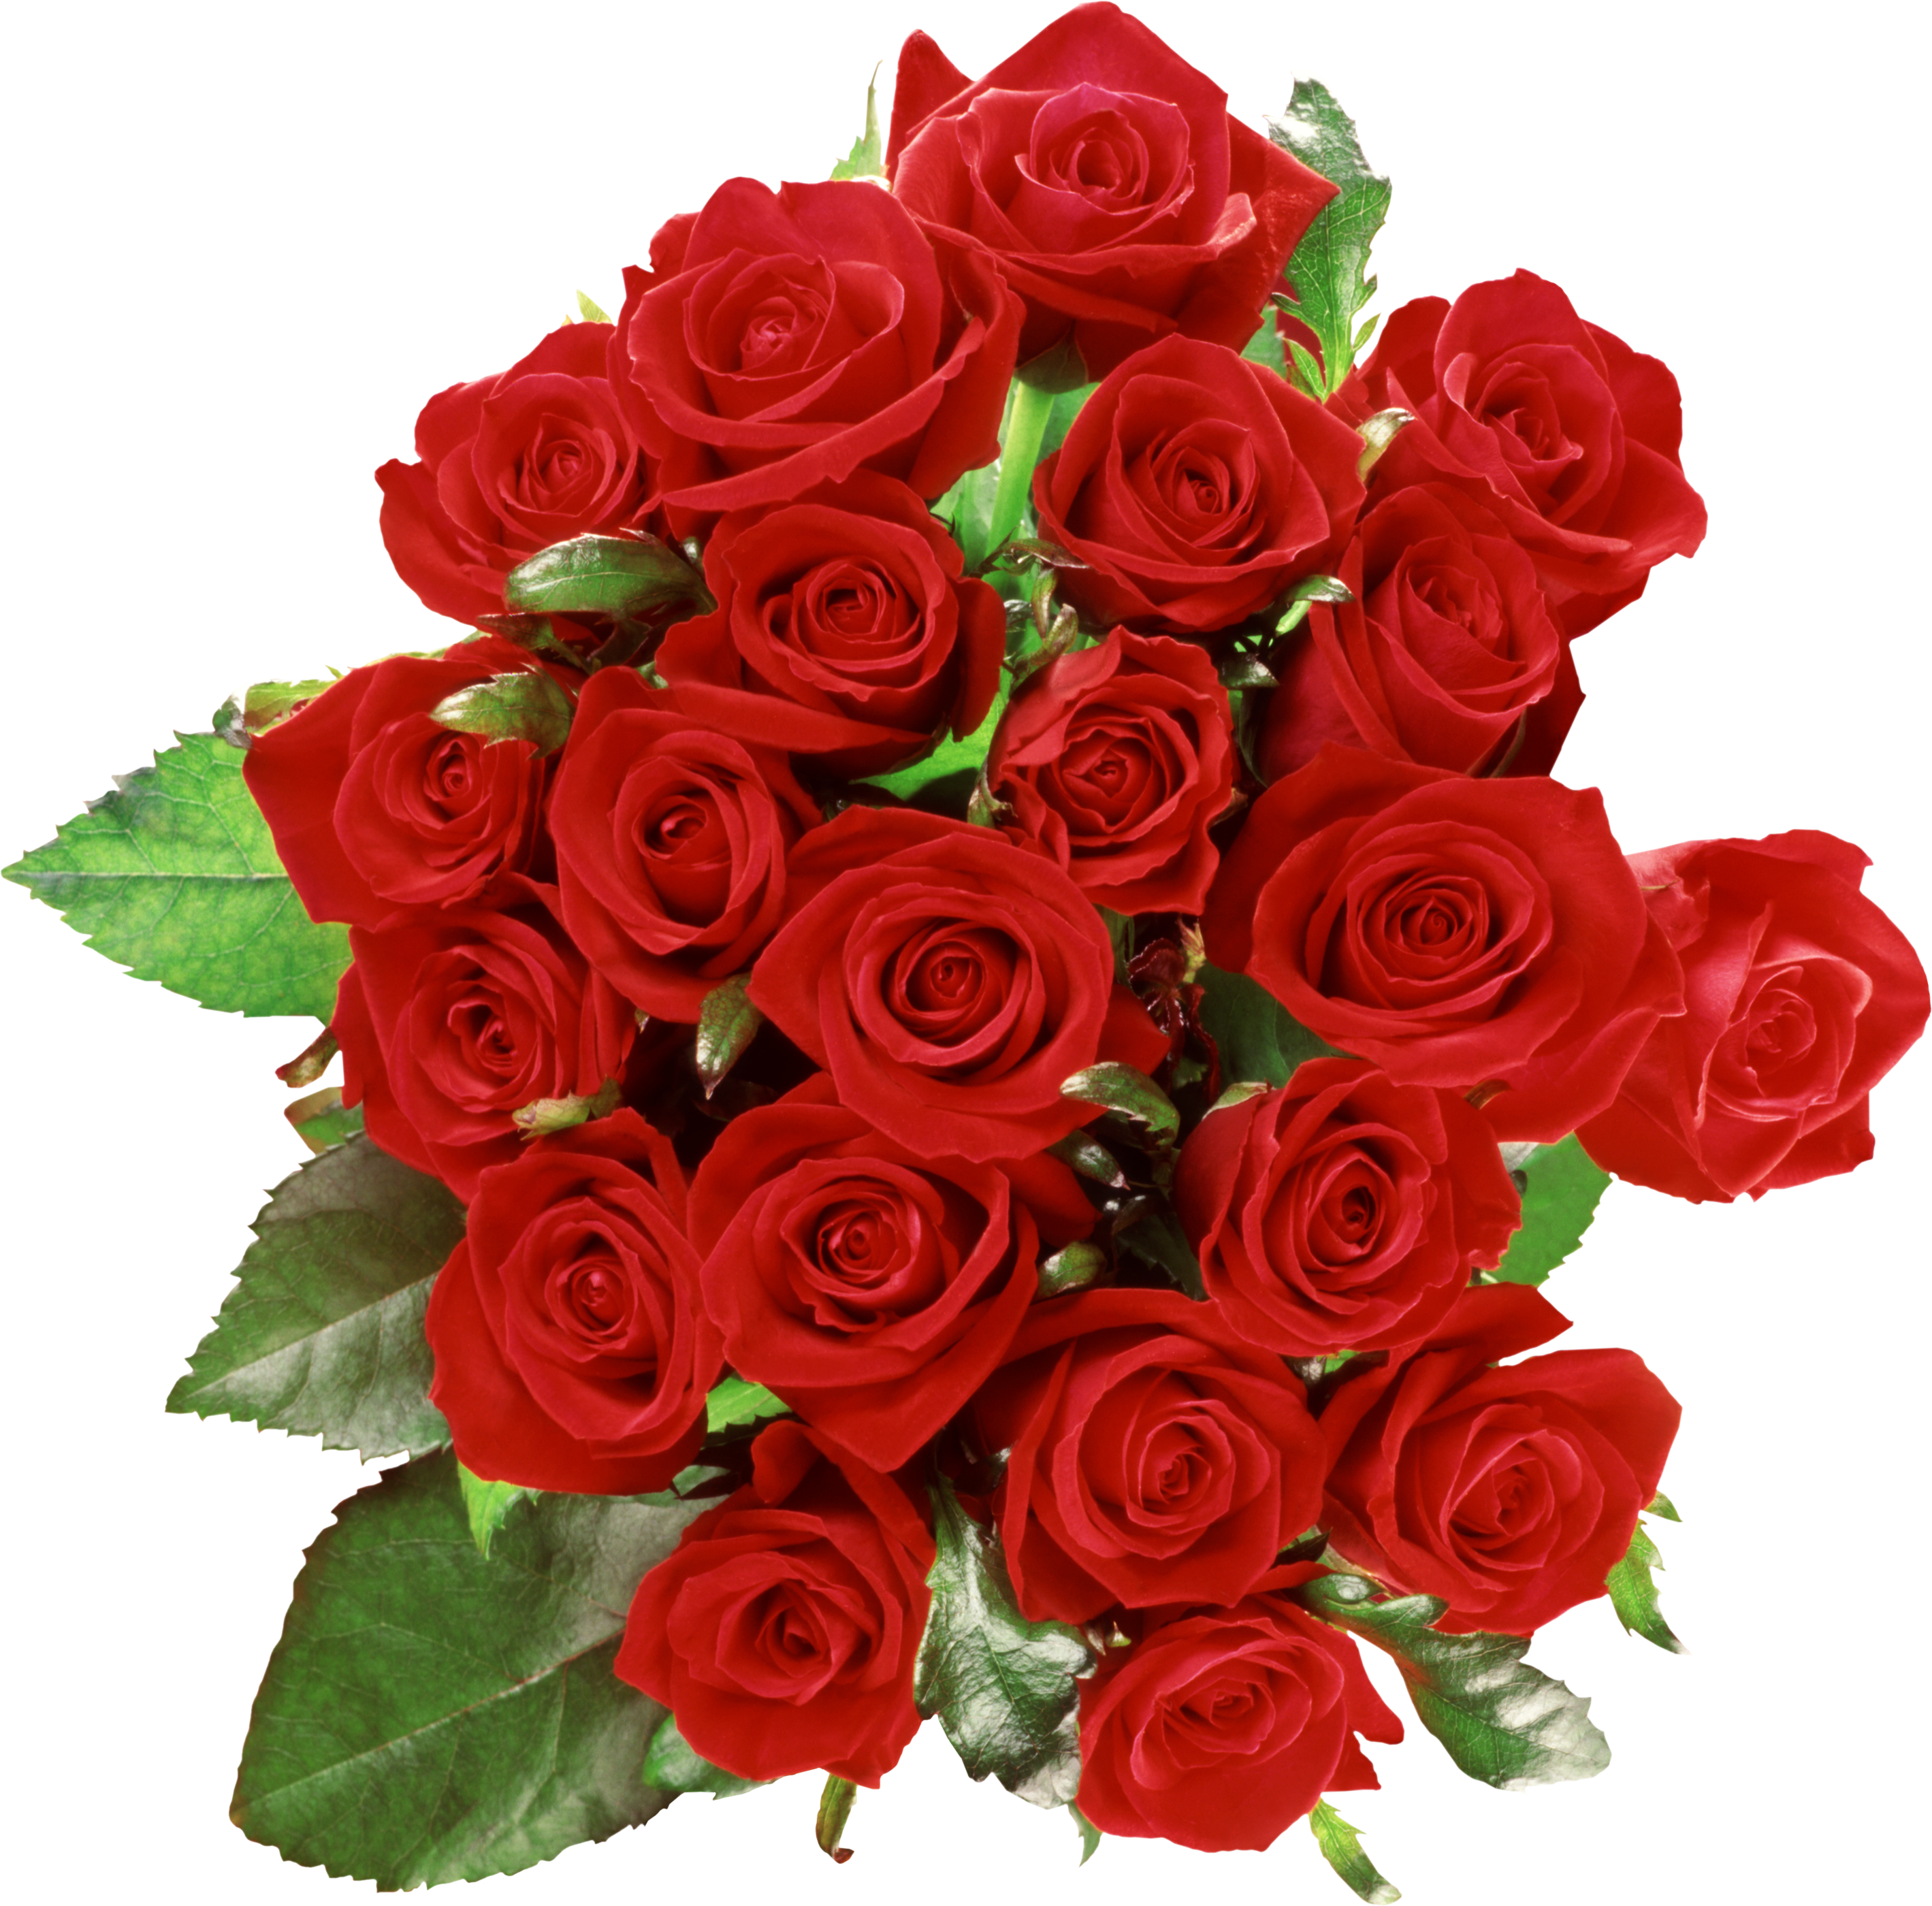 flower transparent flower images red roses #8167